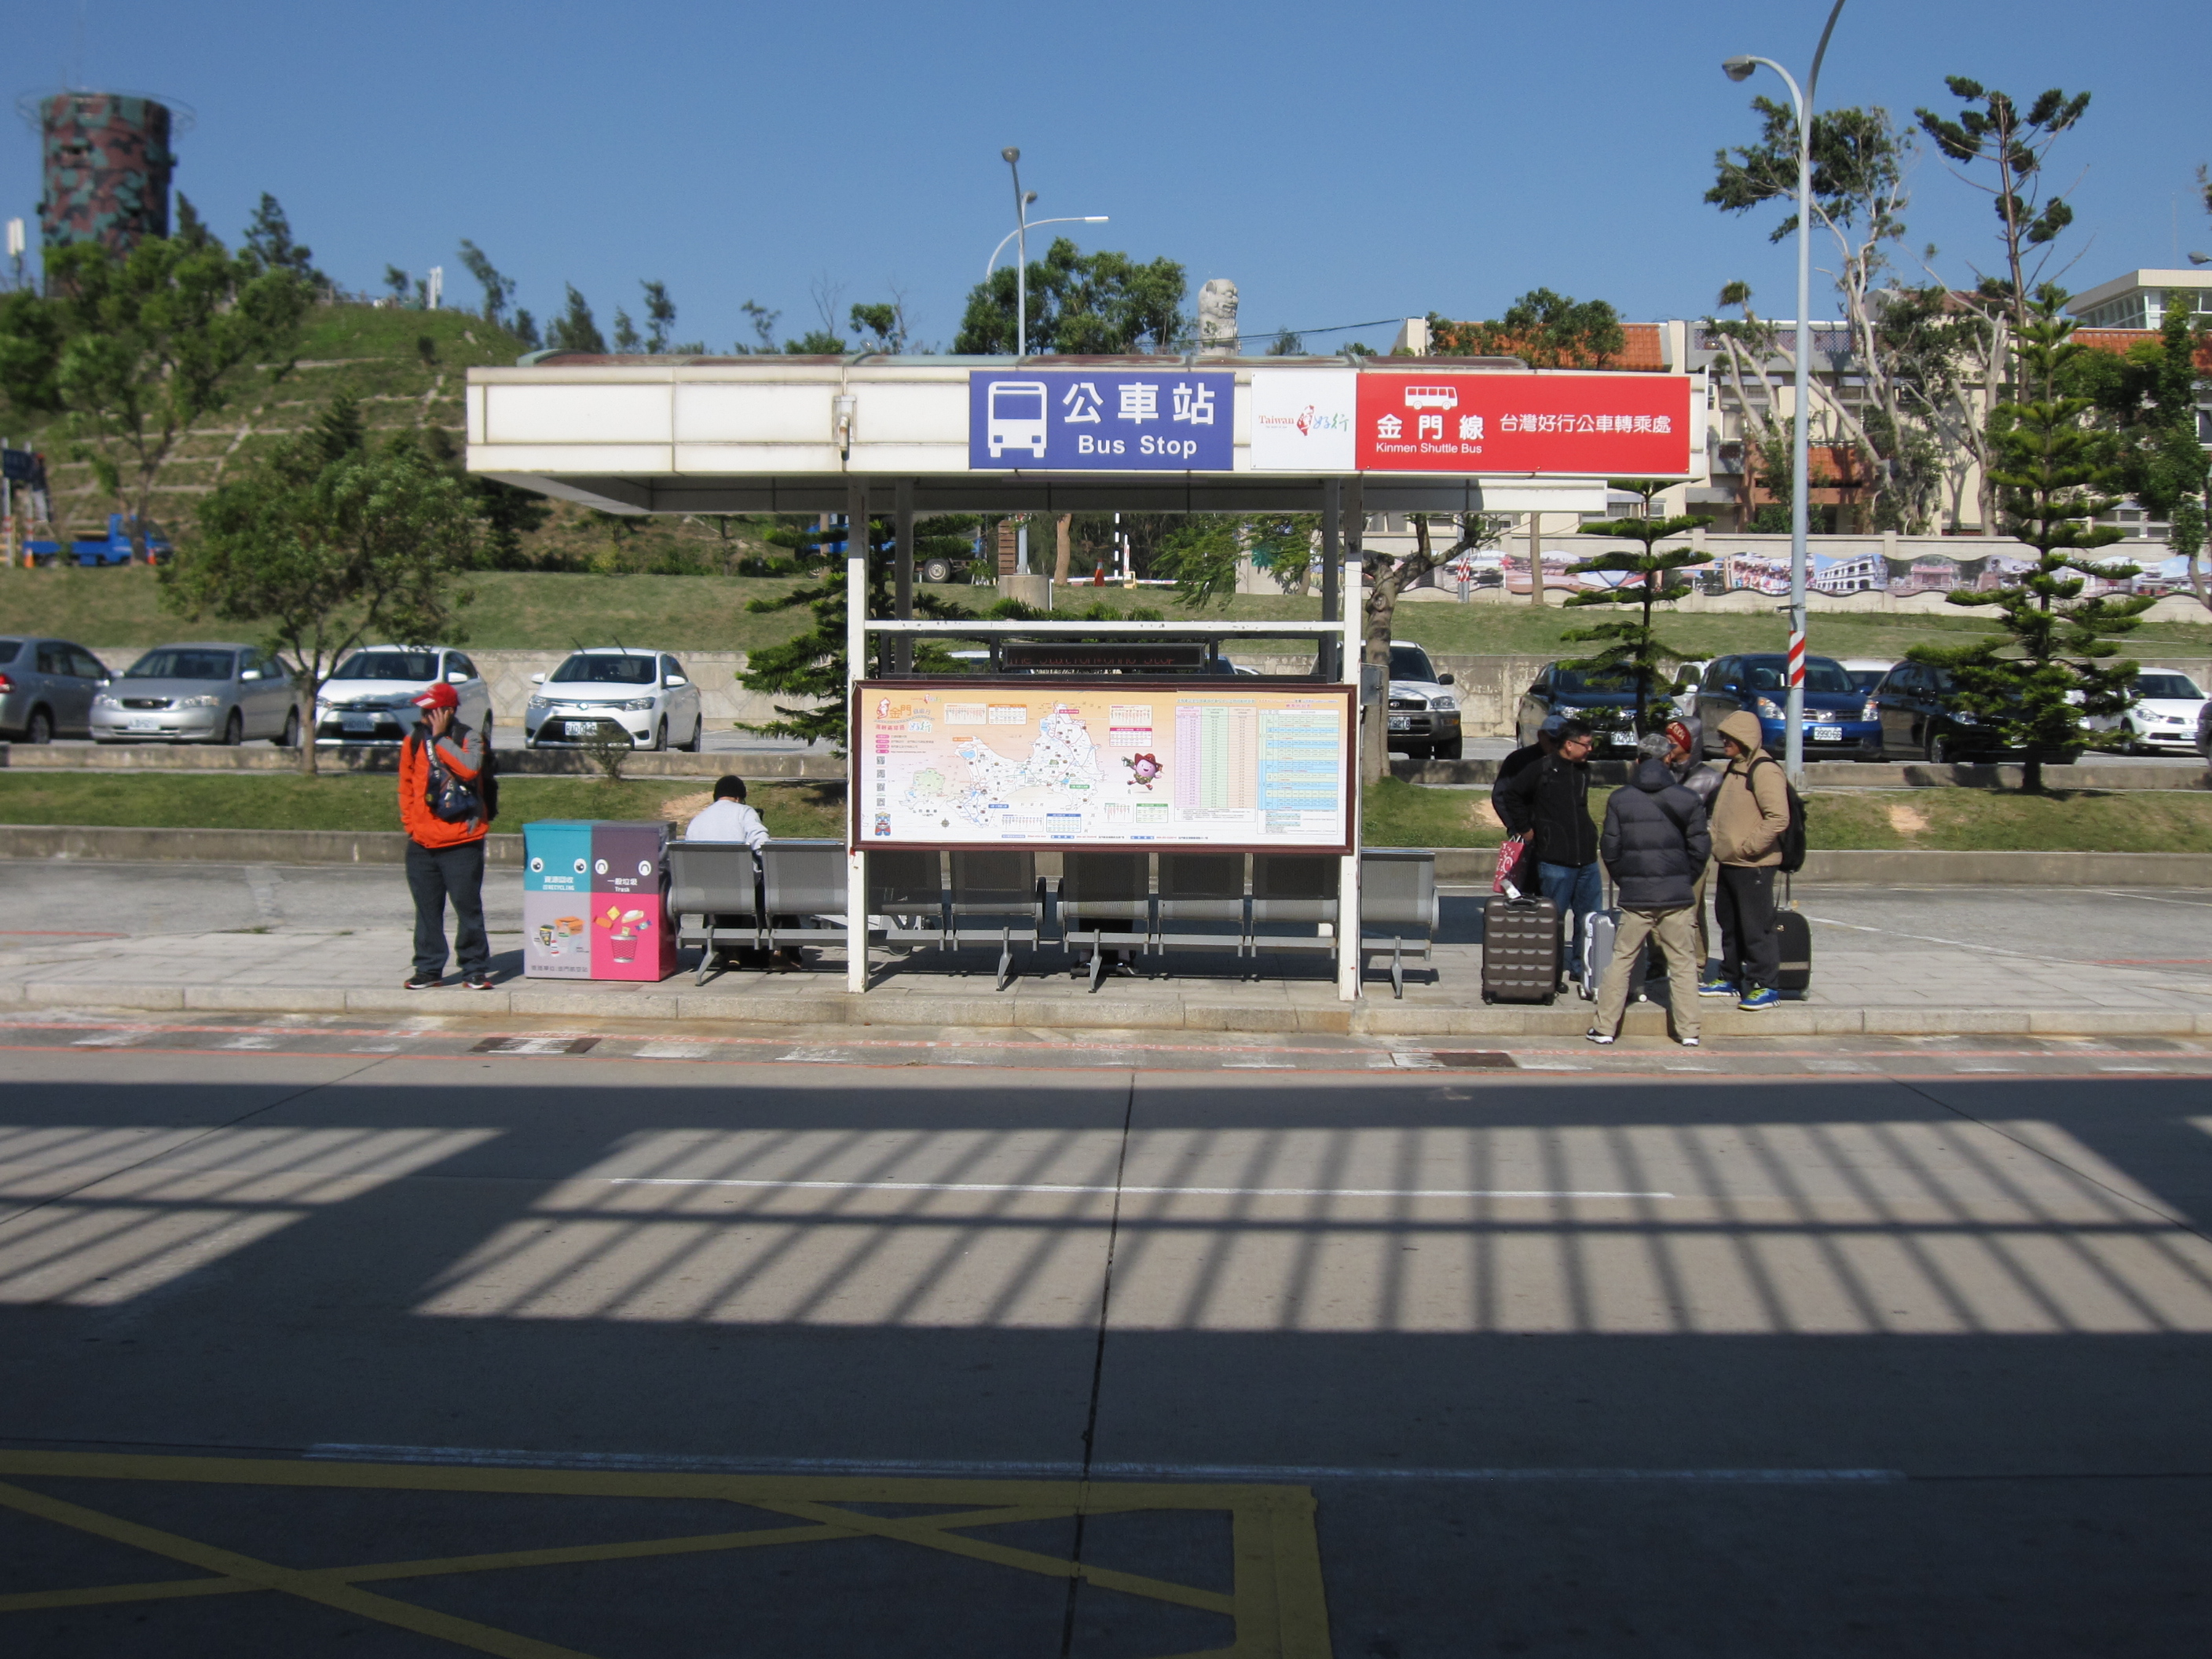 Bus Station in front of the Departure Gate of the Airport